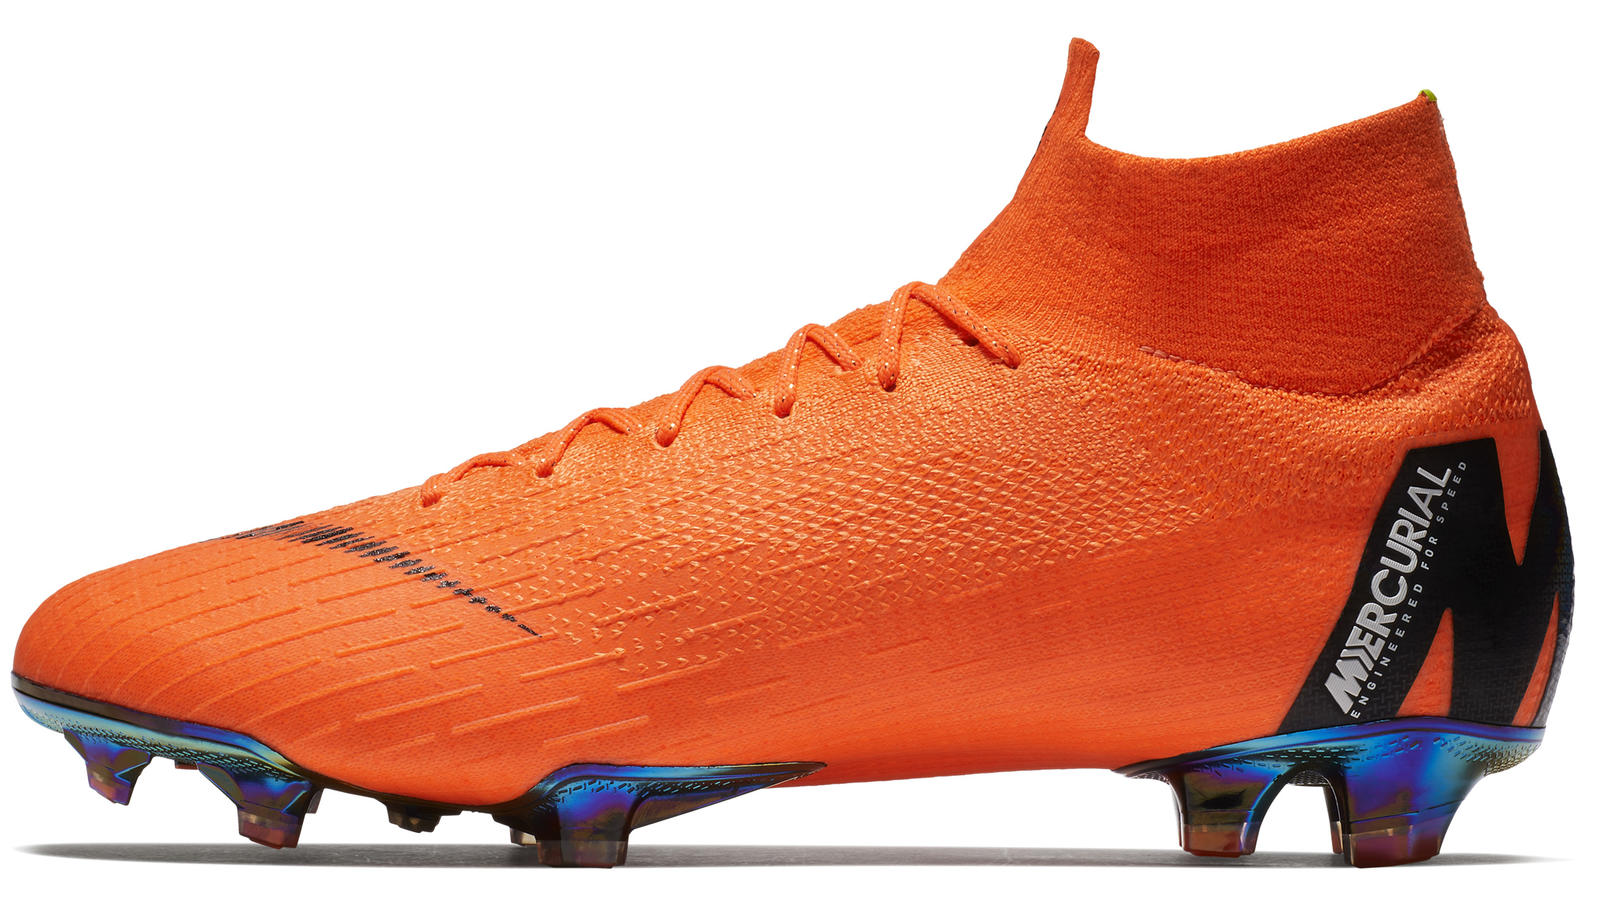 new arrival 0e5c7 6b850 Introducing the Mercurial Superfly and Vapor 360: Fast By ...